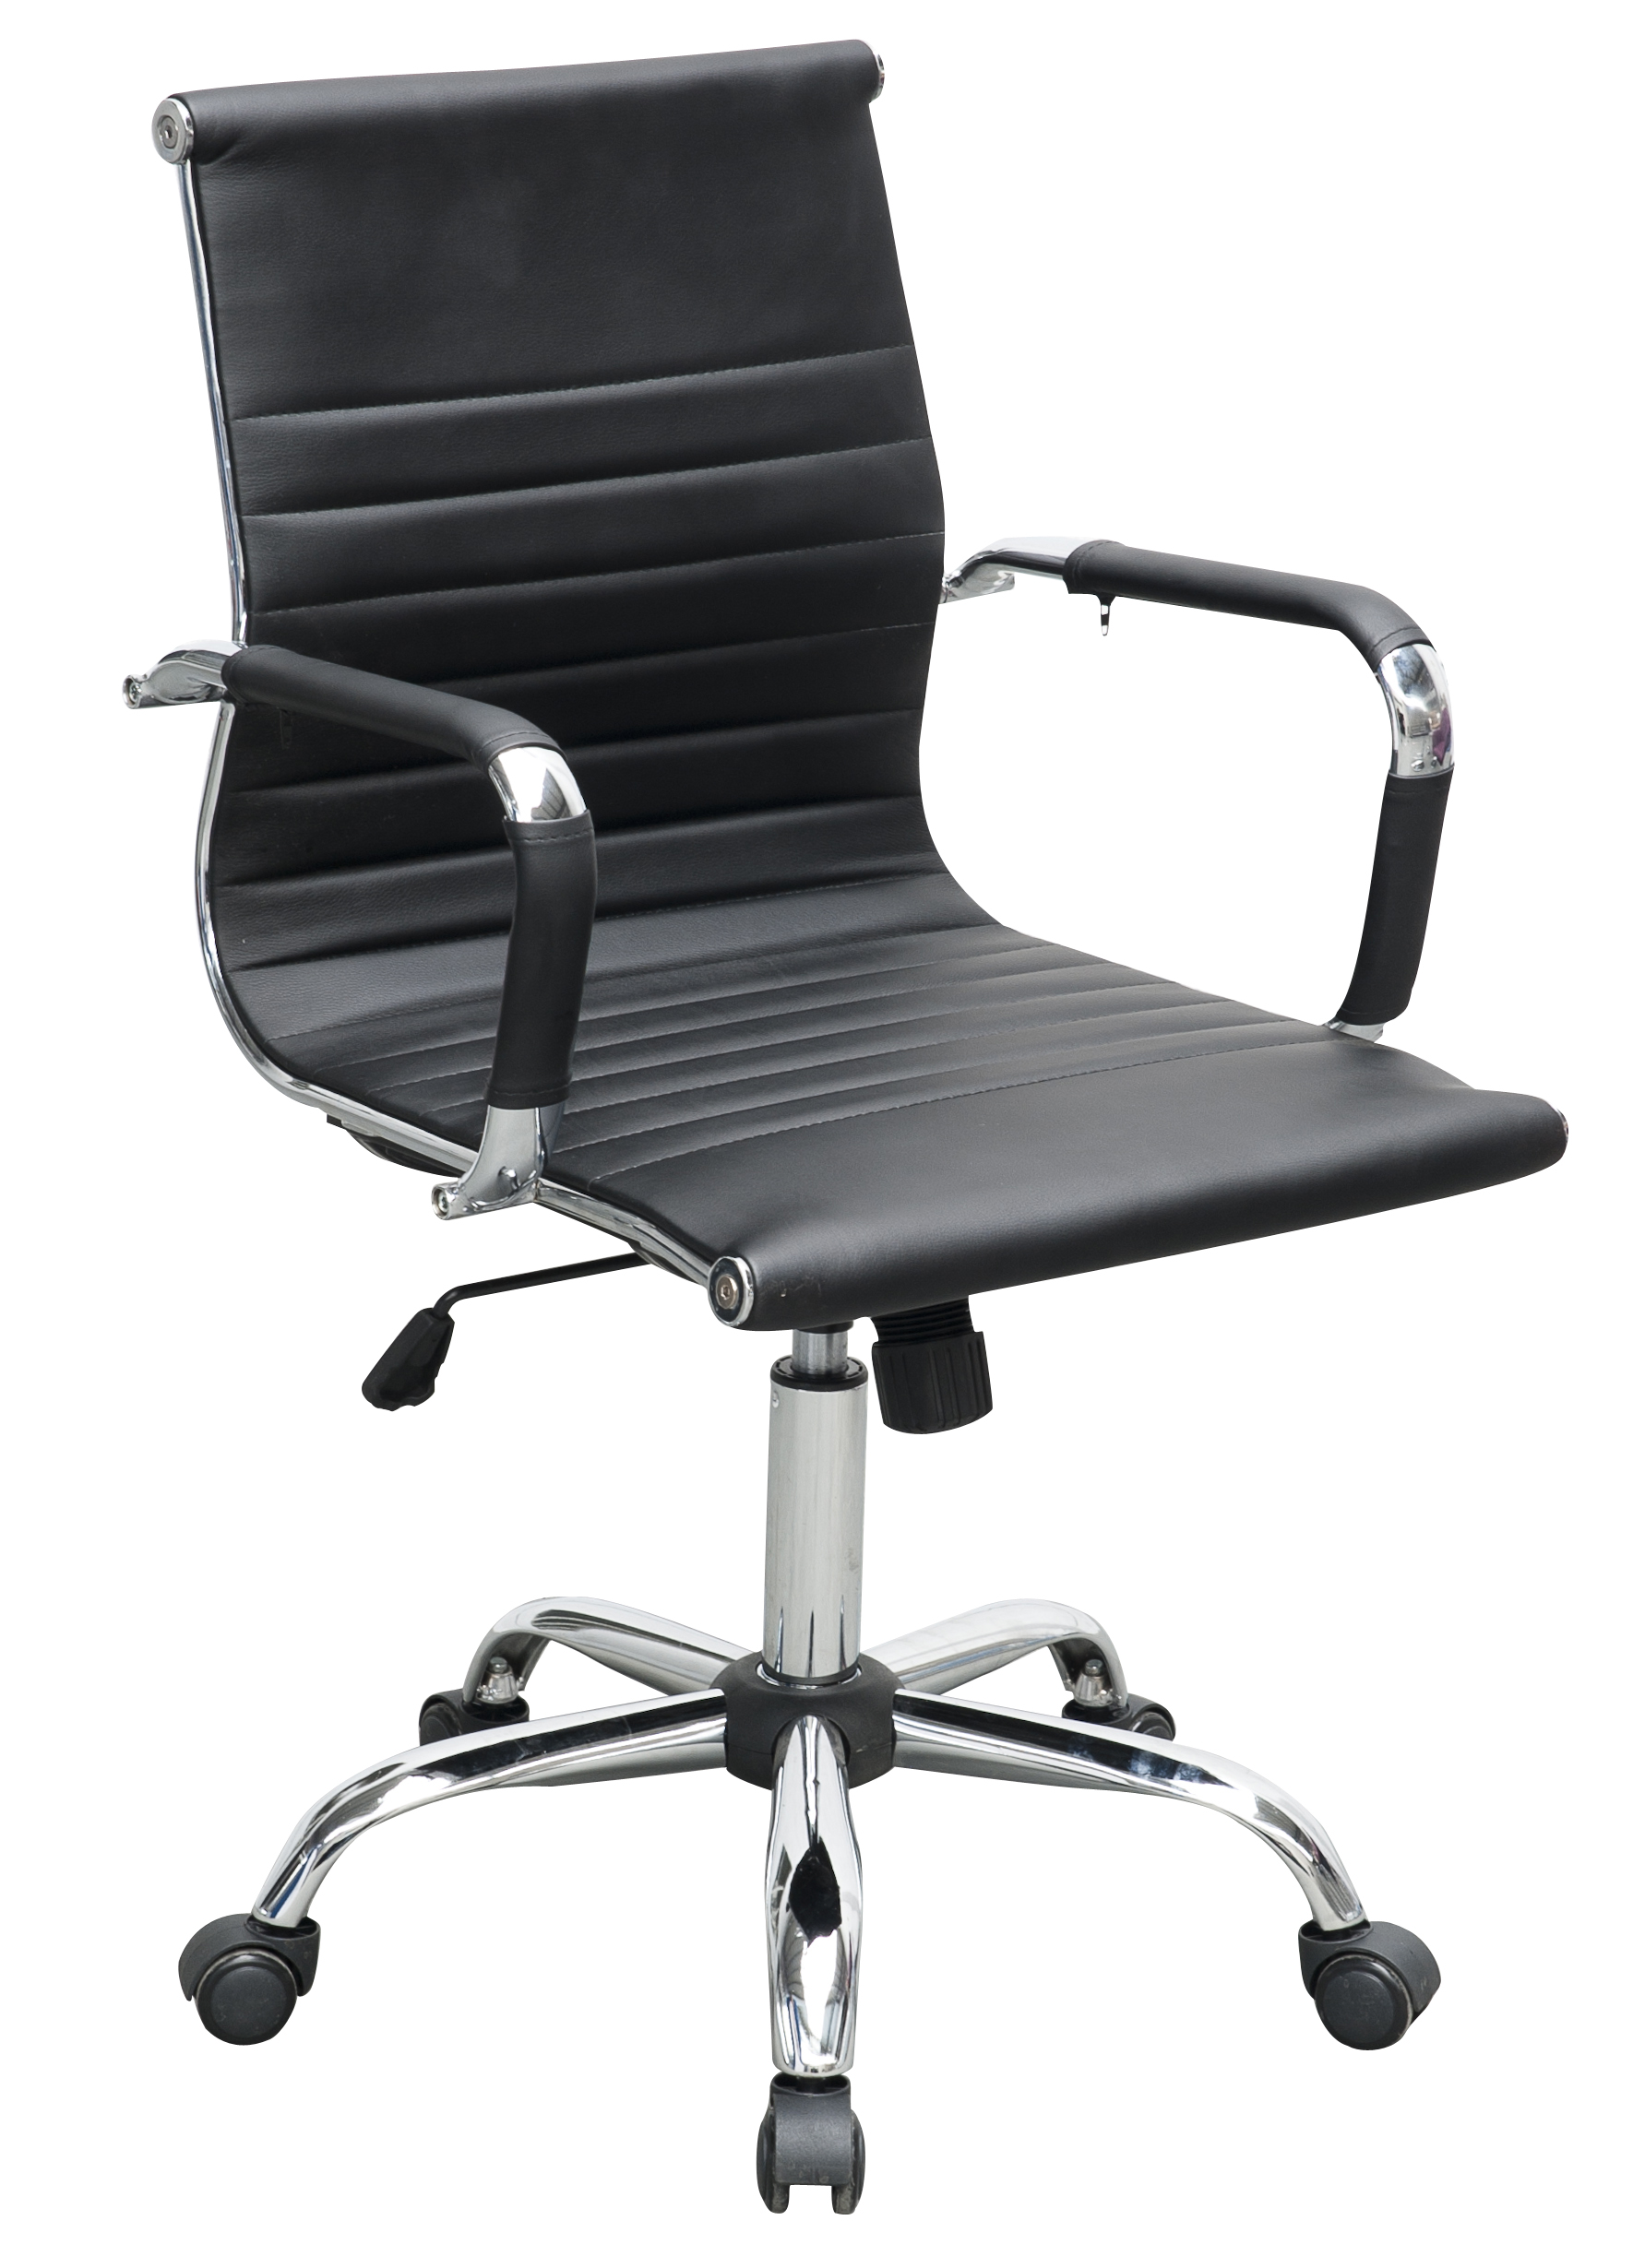 black leather office chair high back bookshelf for sale executive premium pu faux